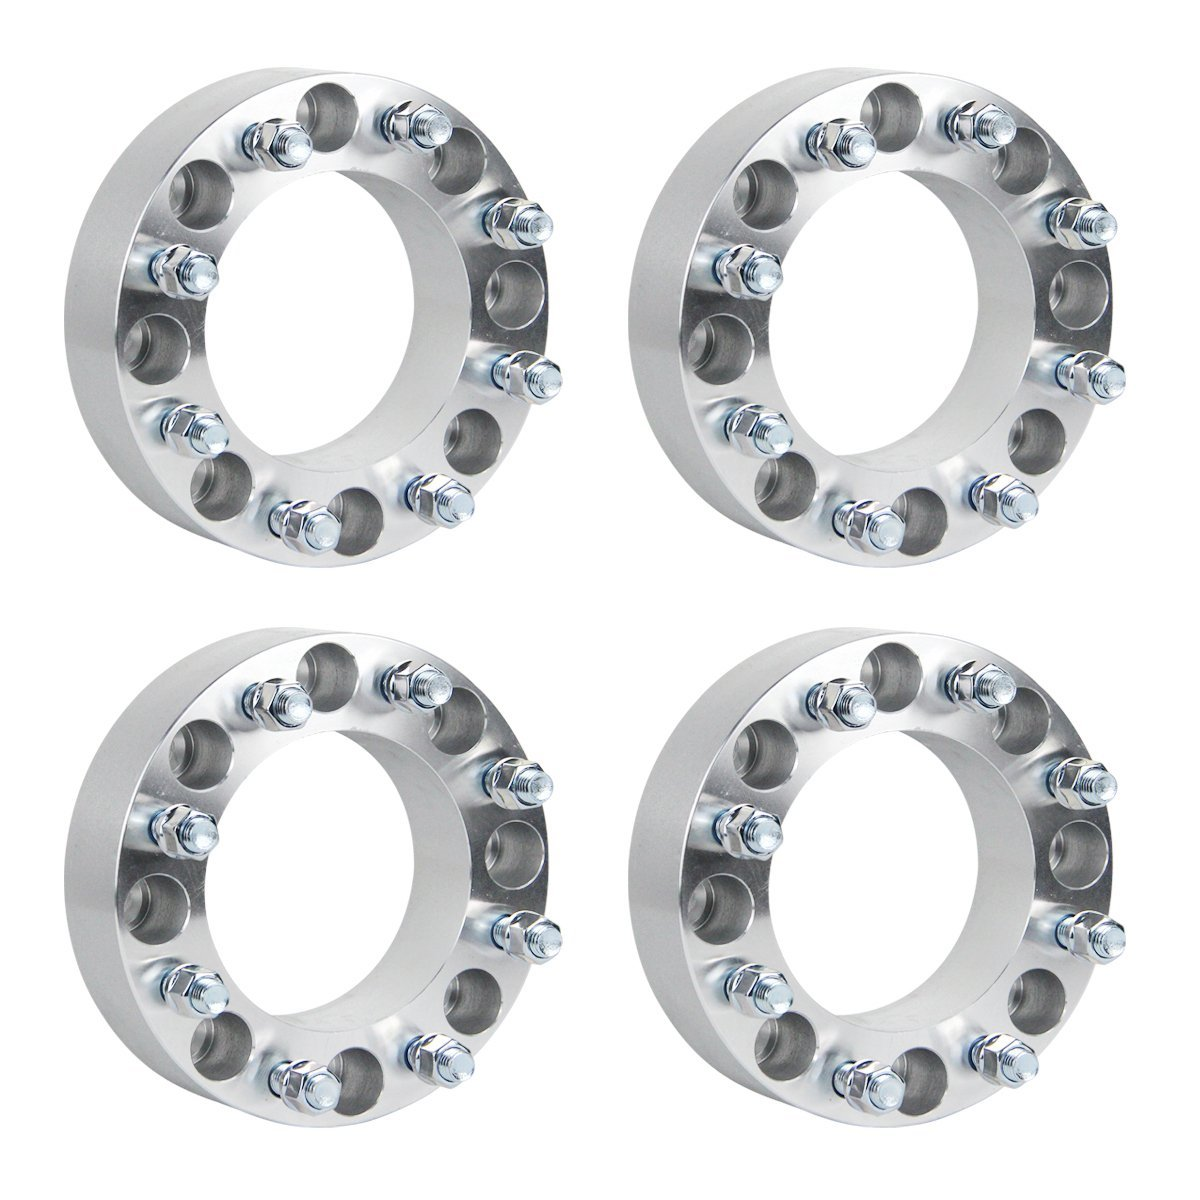 "GESS 4pc 2"" 8x170 to 8x170 Wheel Spacers for Ford F250 F350 Super Duty Excursion Truck 14x2 Studs (Arrive whithin 3-7 business days)"